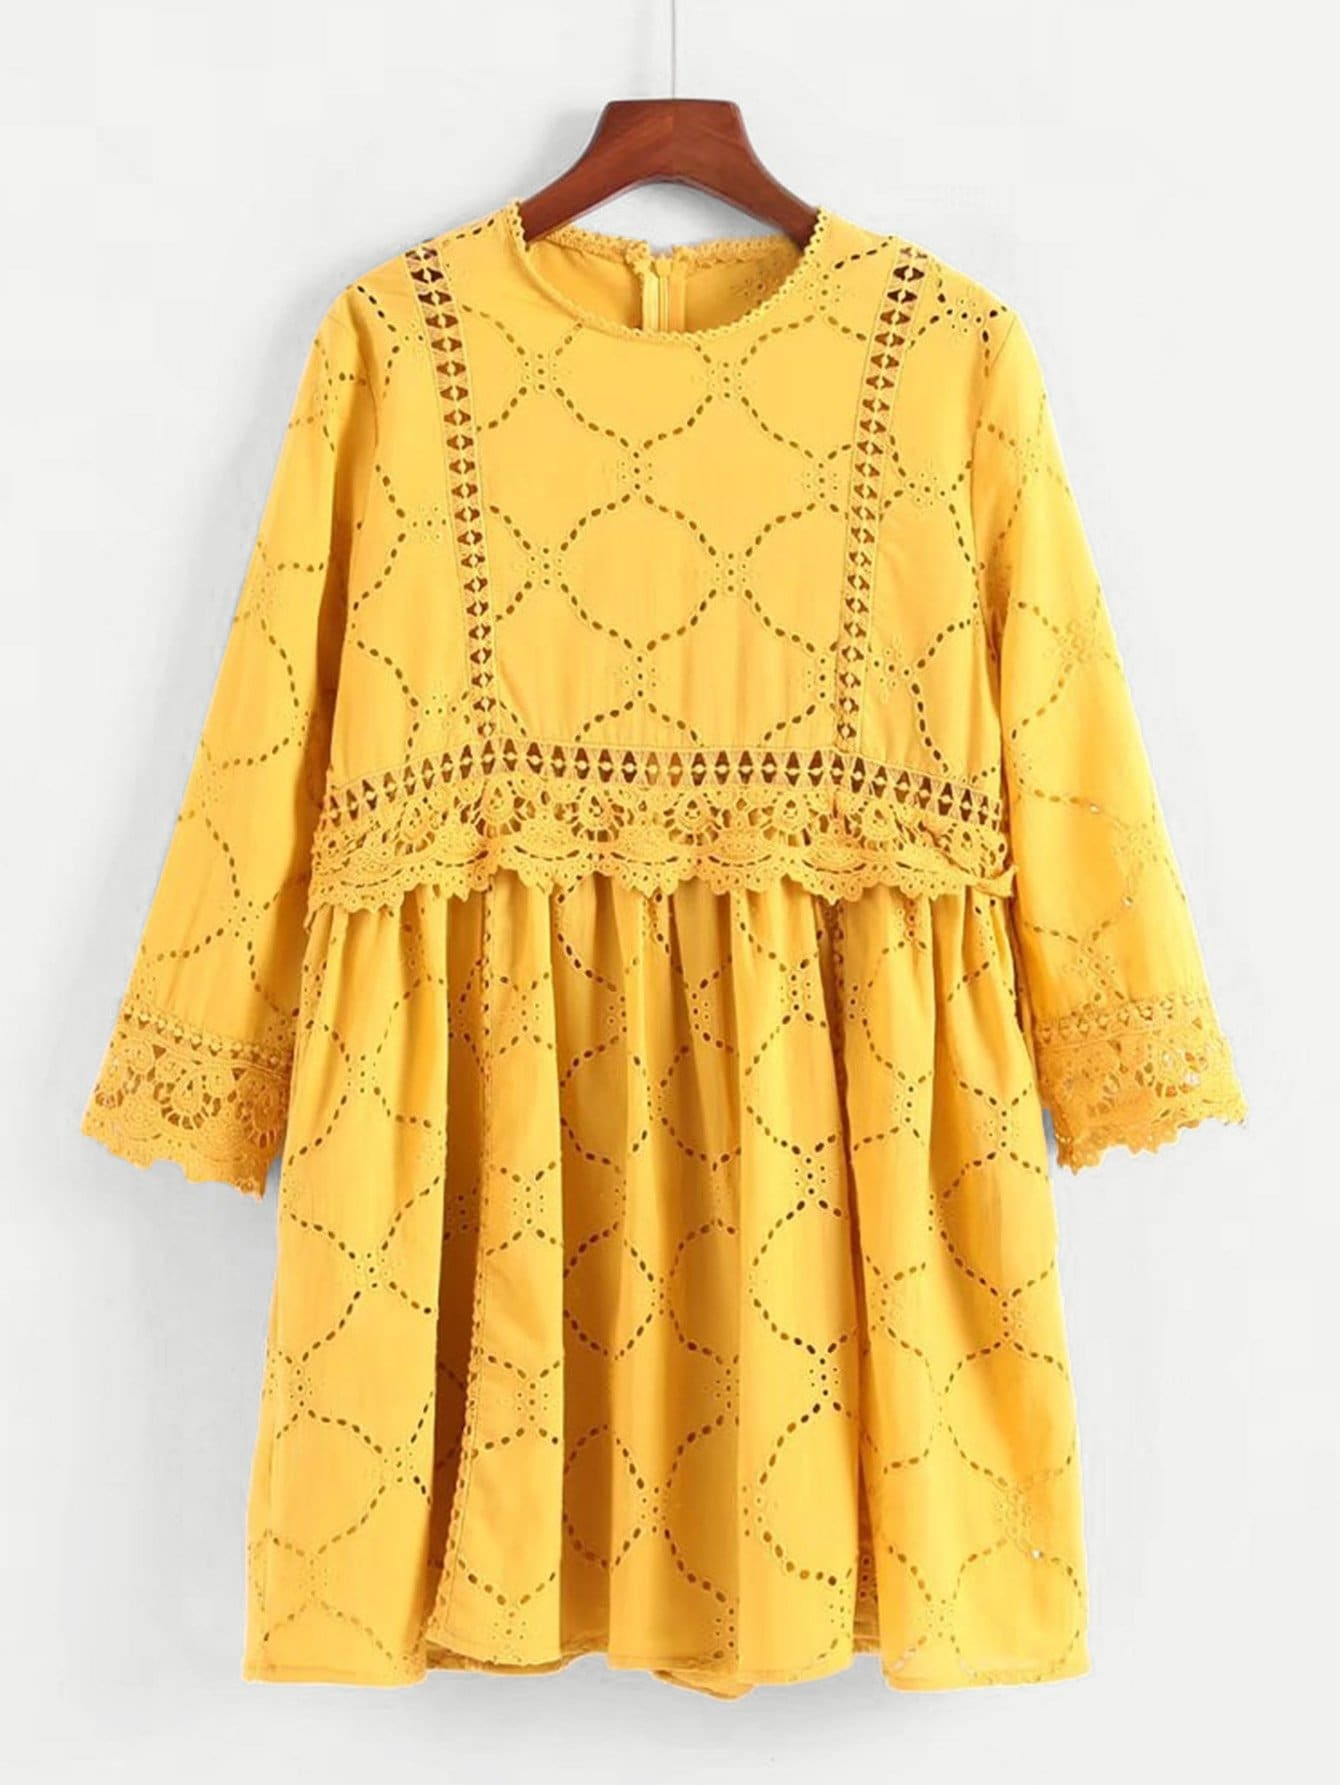 Lace Panel Embroidered Eyelet Dress eyelet embroidered self belted dress